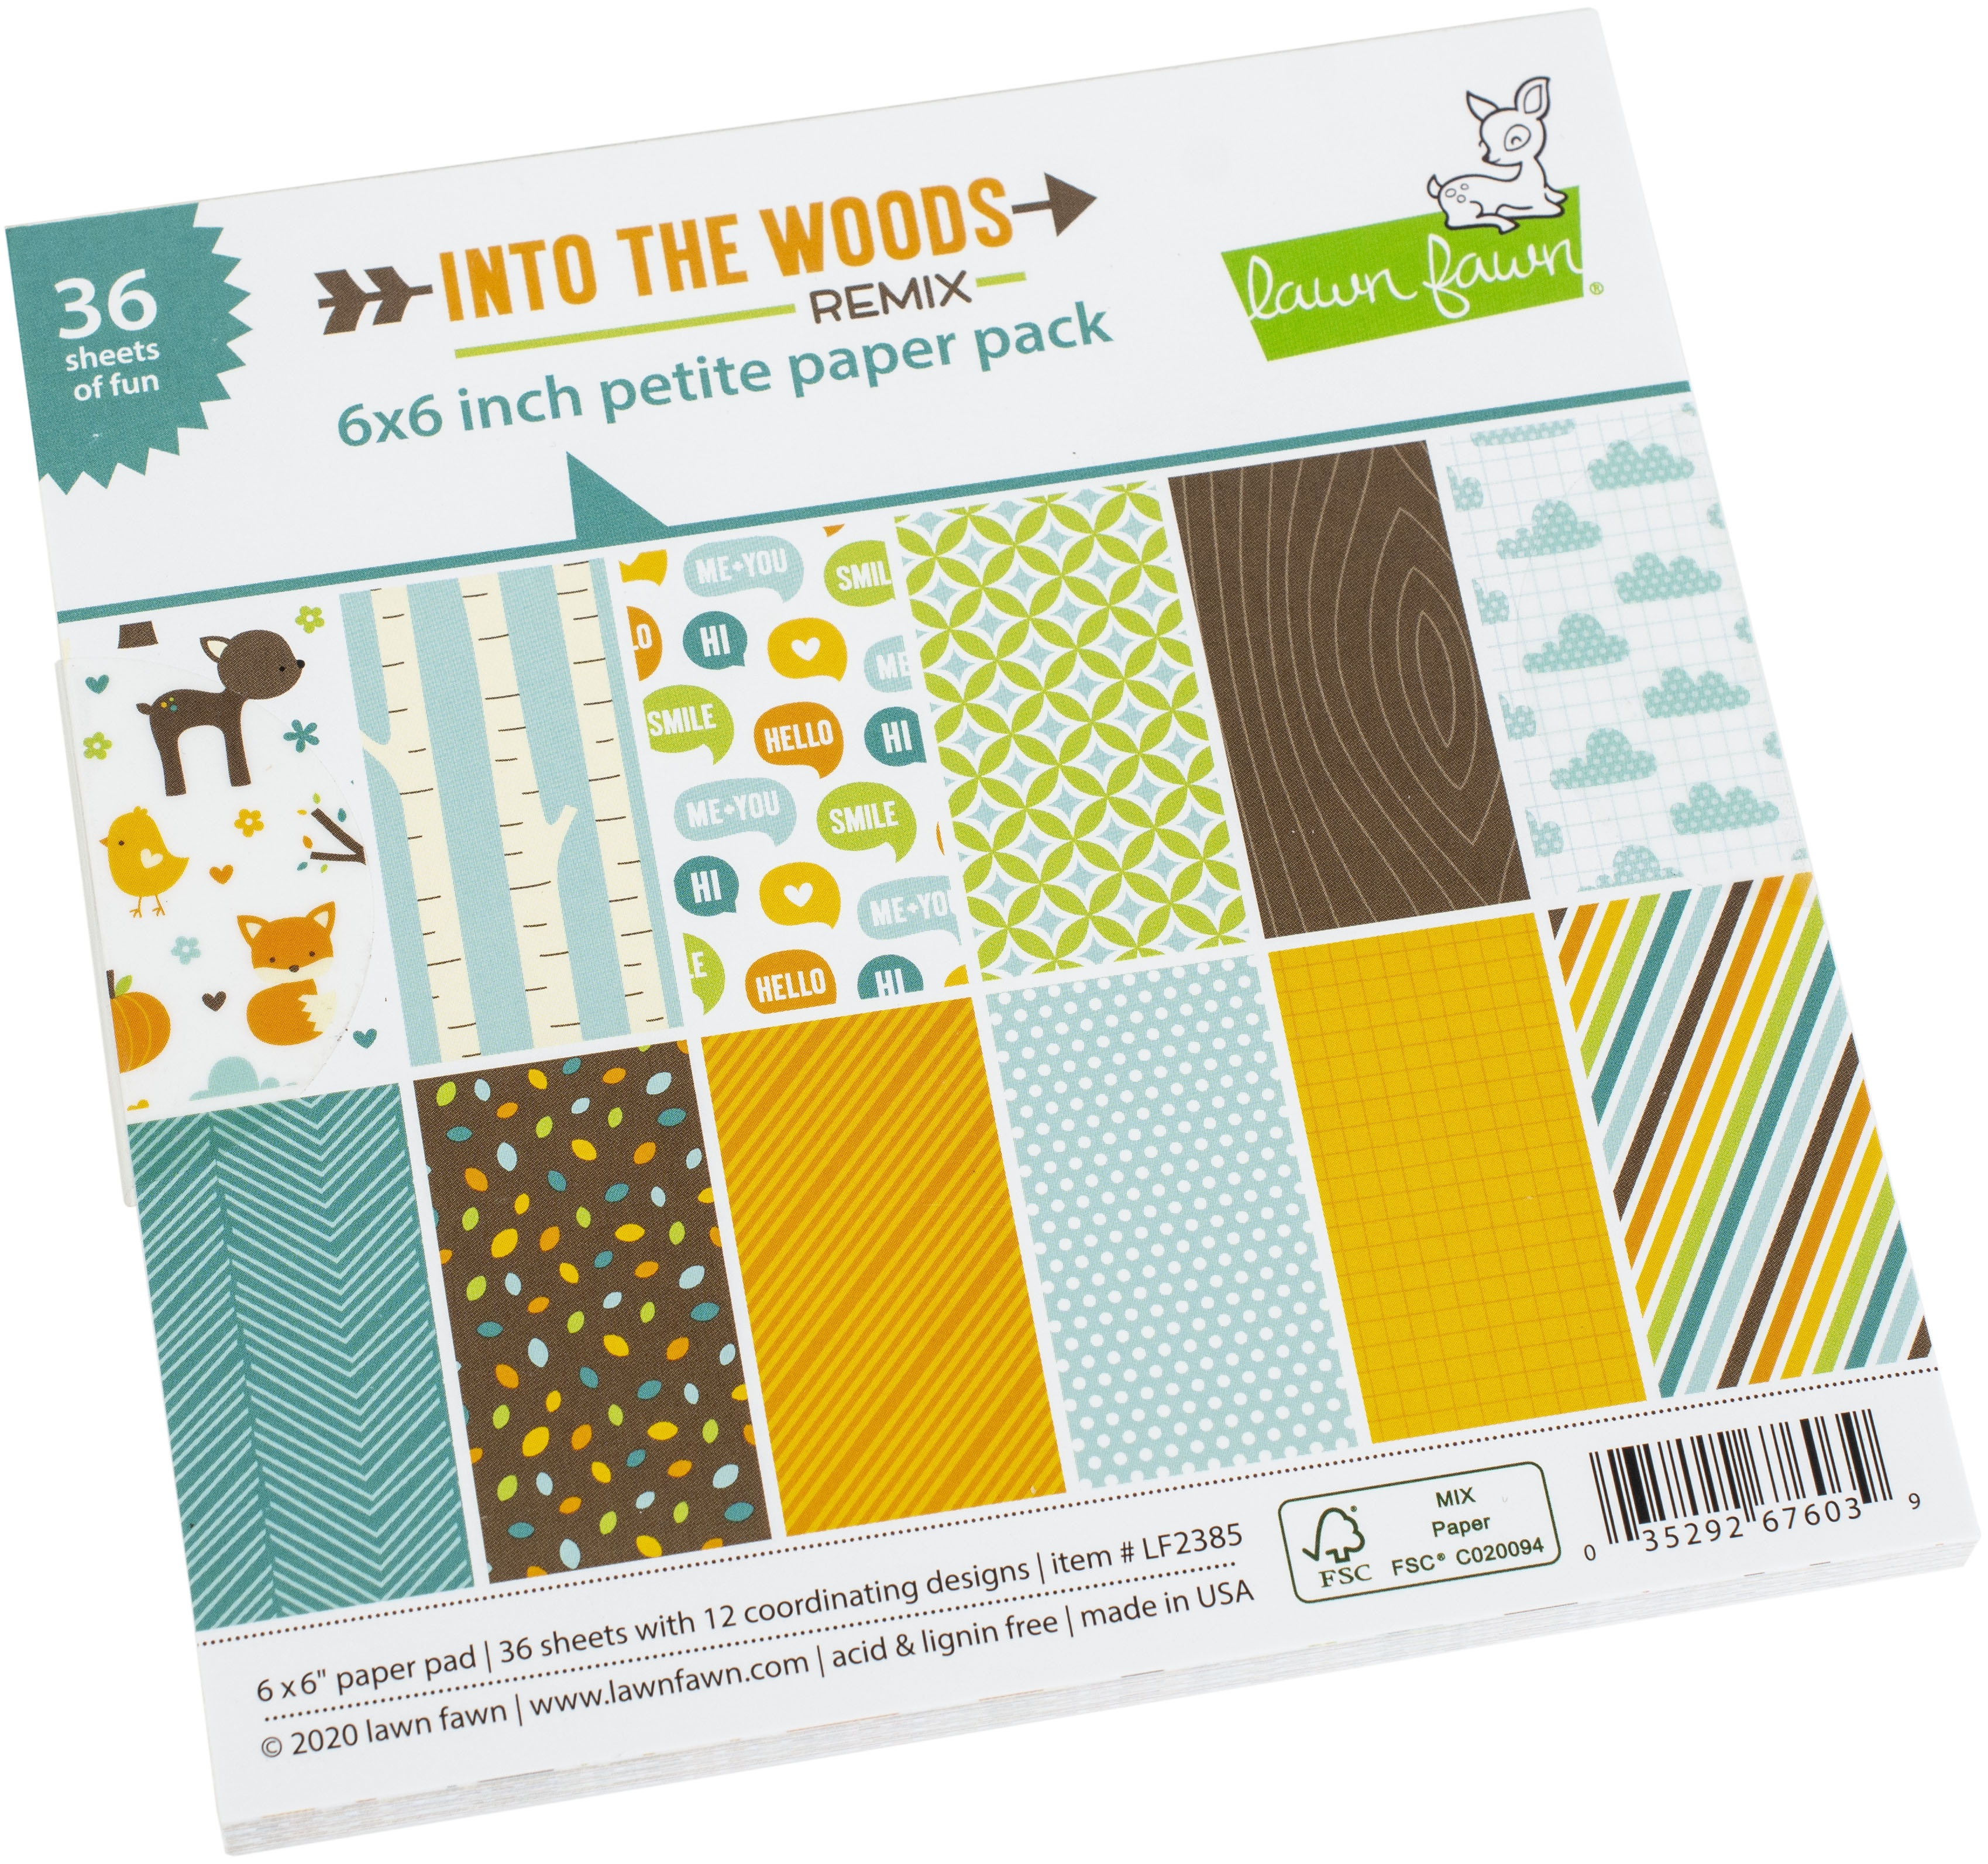 Lawn Fawn Single-Sided Petite Paper Pack 6X6 36/Pkg-Into The Woods Remix, 12 Designs/3 Each